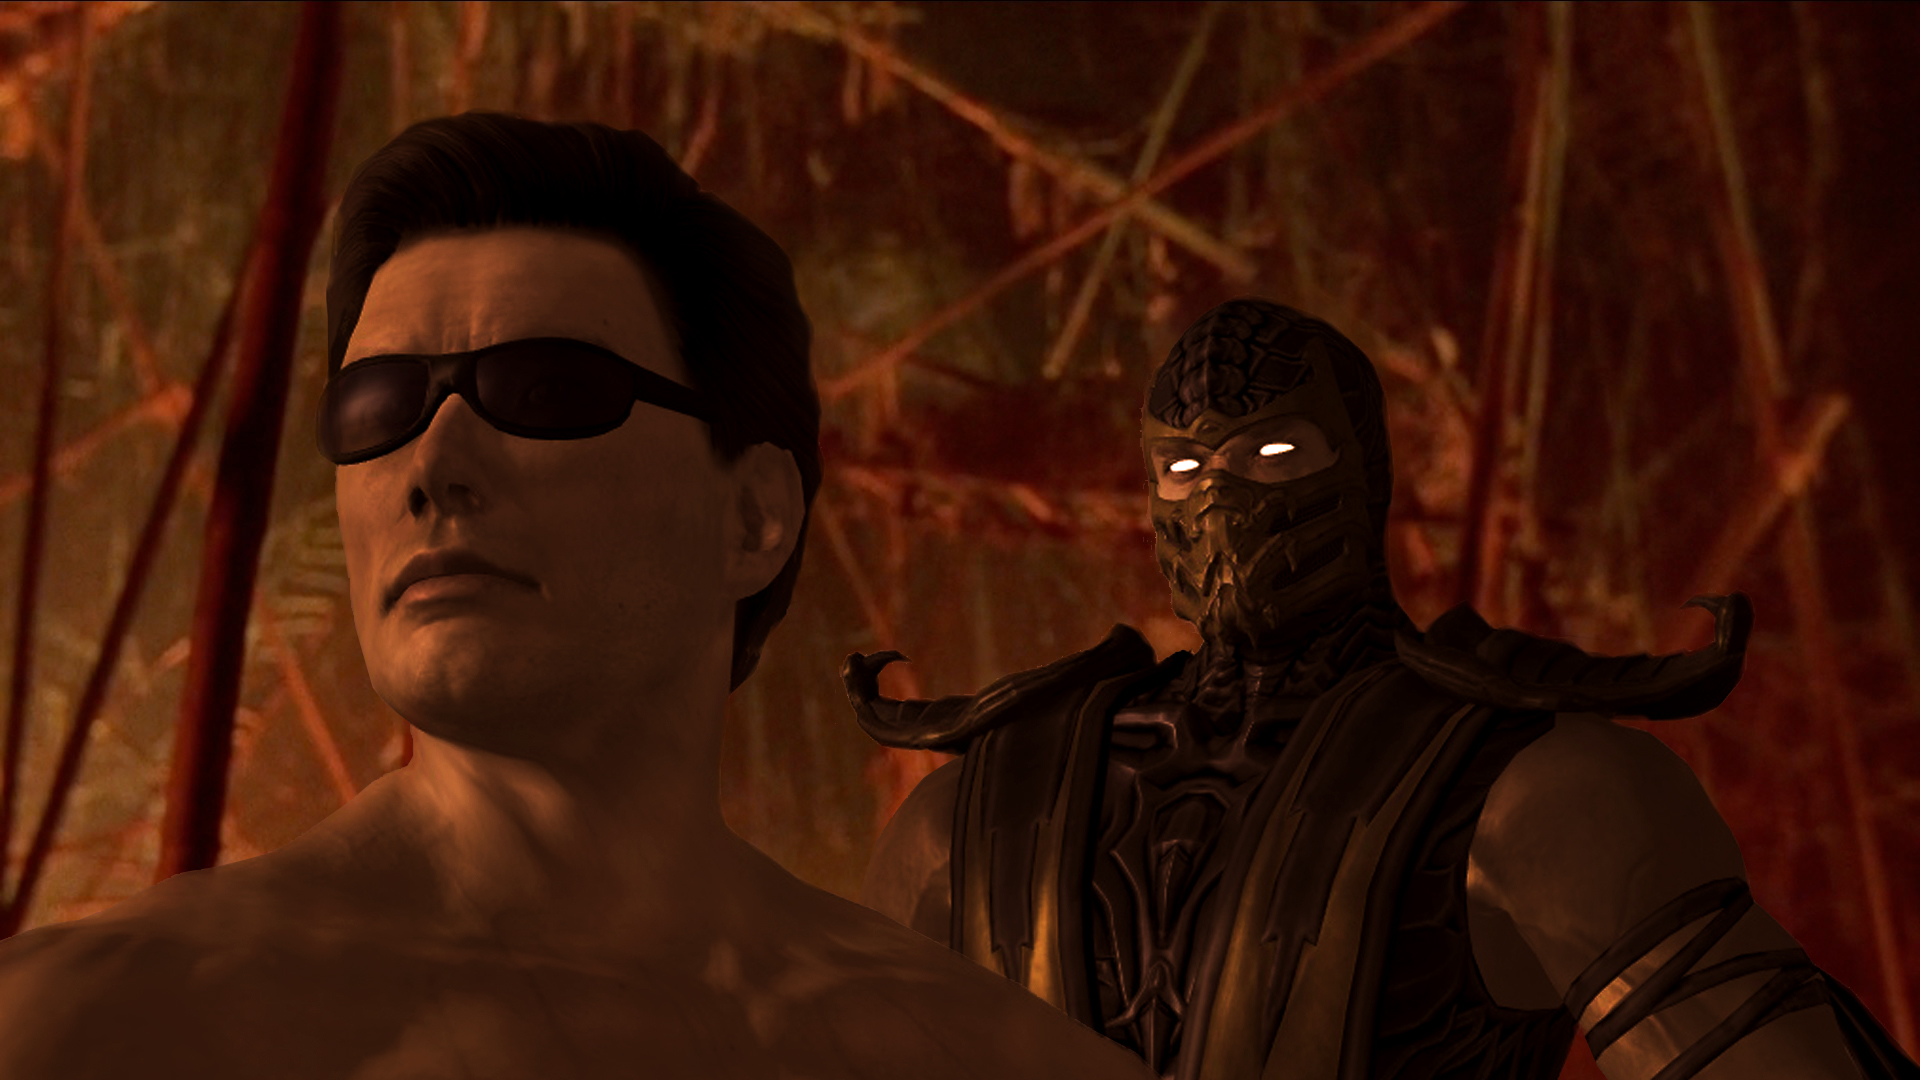 Welcome Johnny Cage Vs Scorpion Concept By Odawne On Deviantart